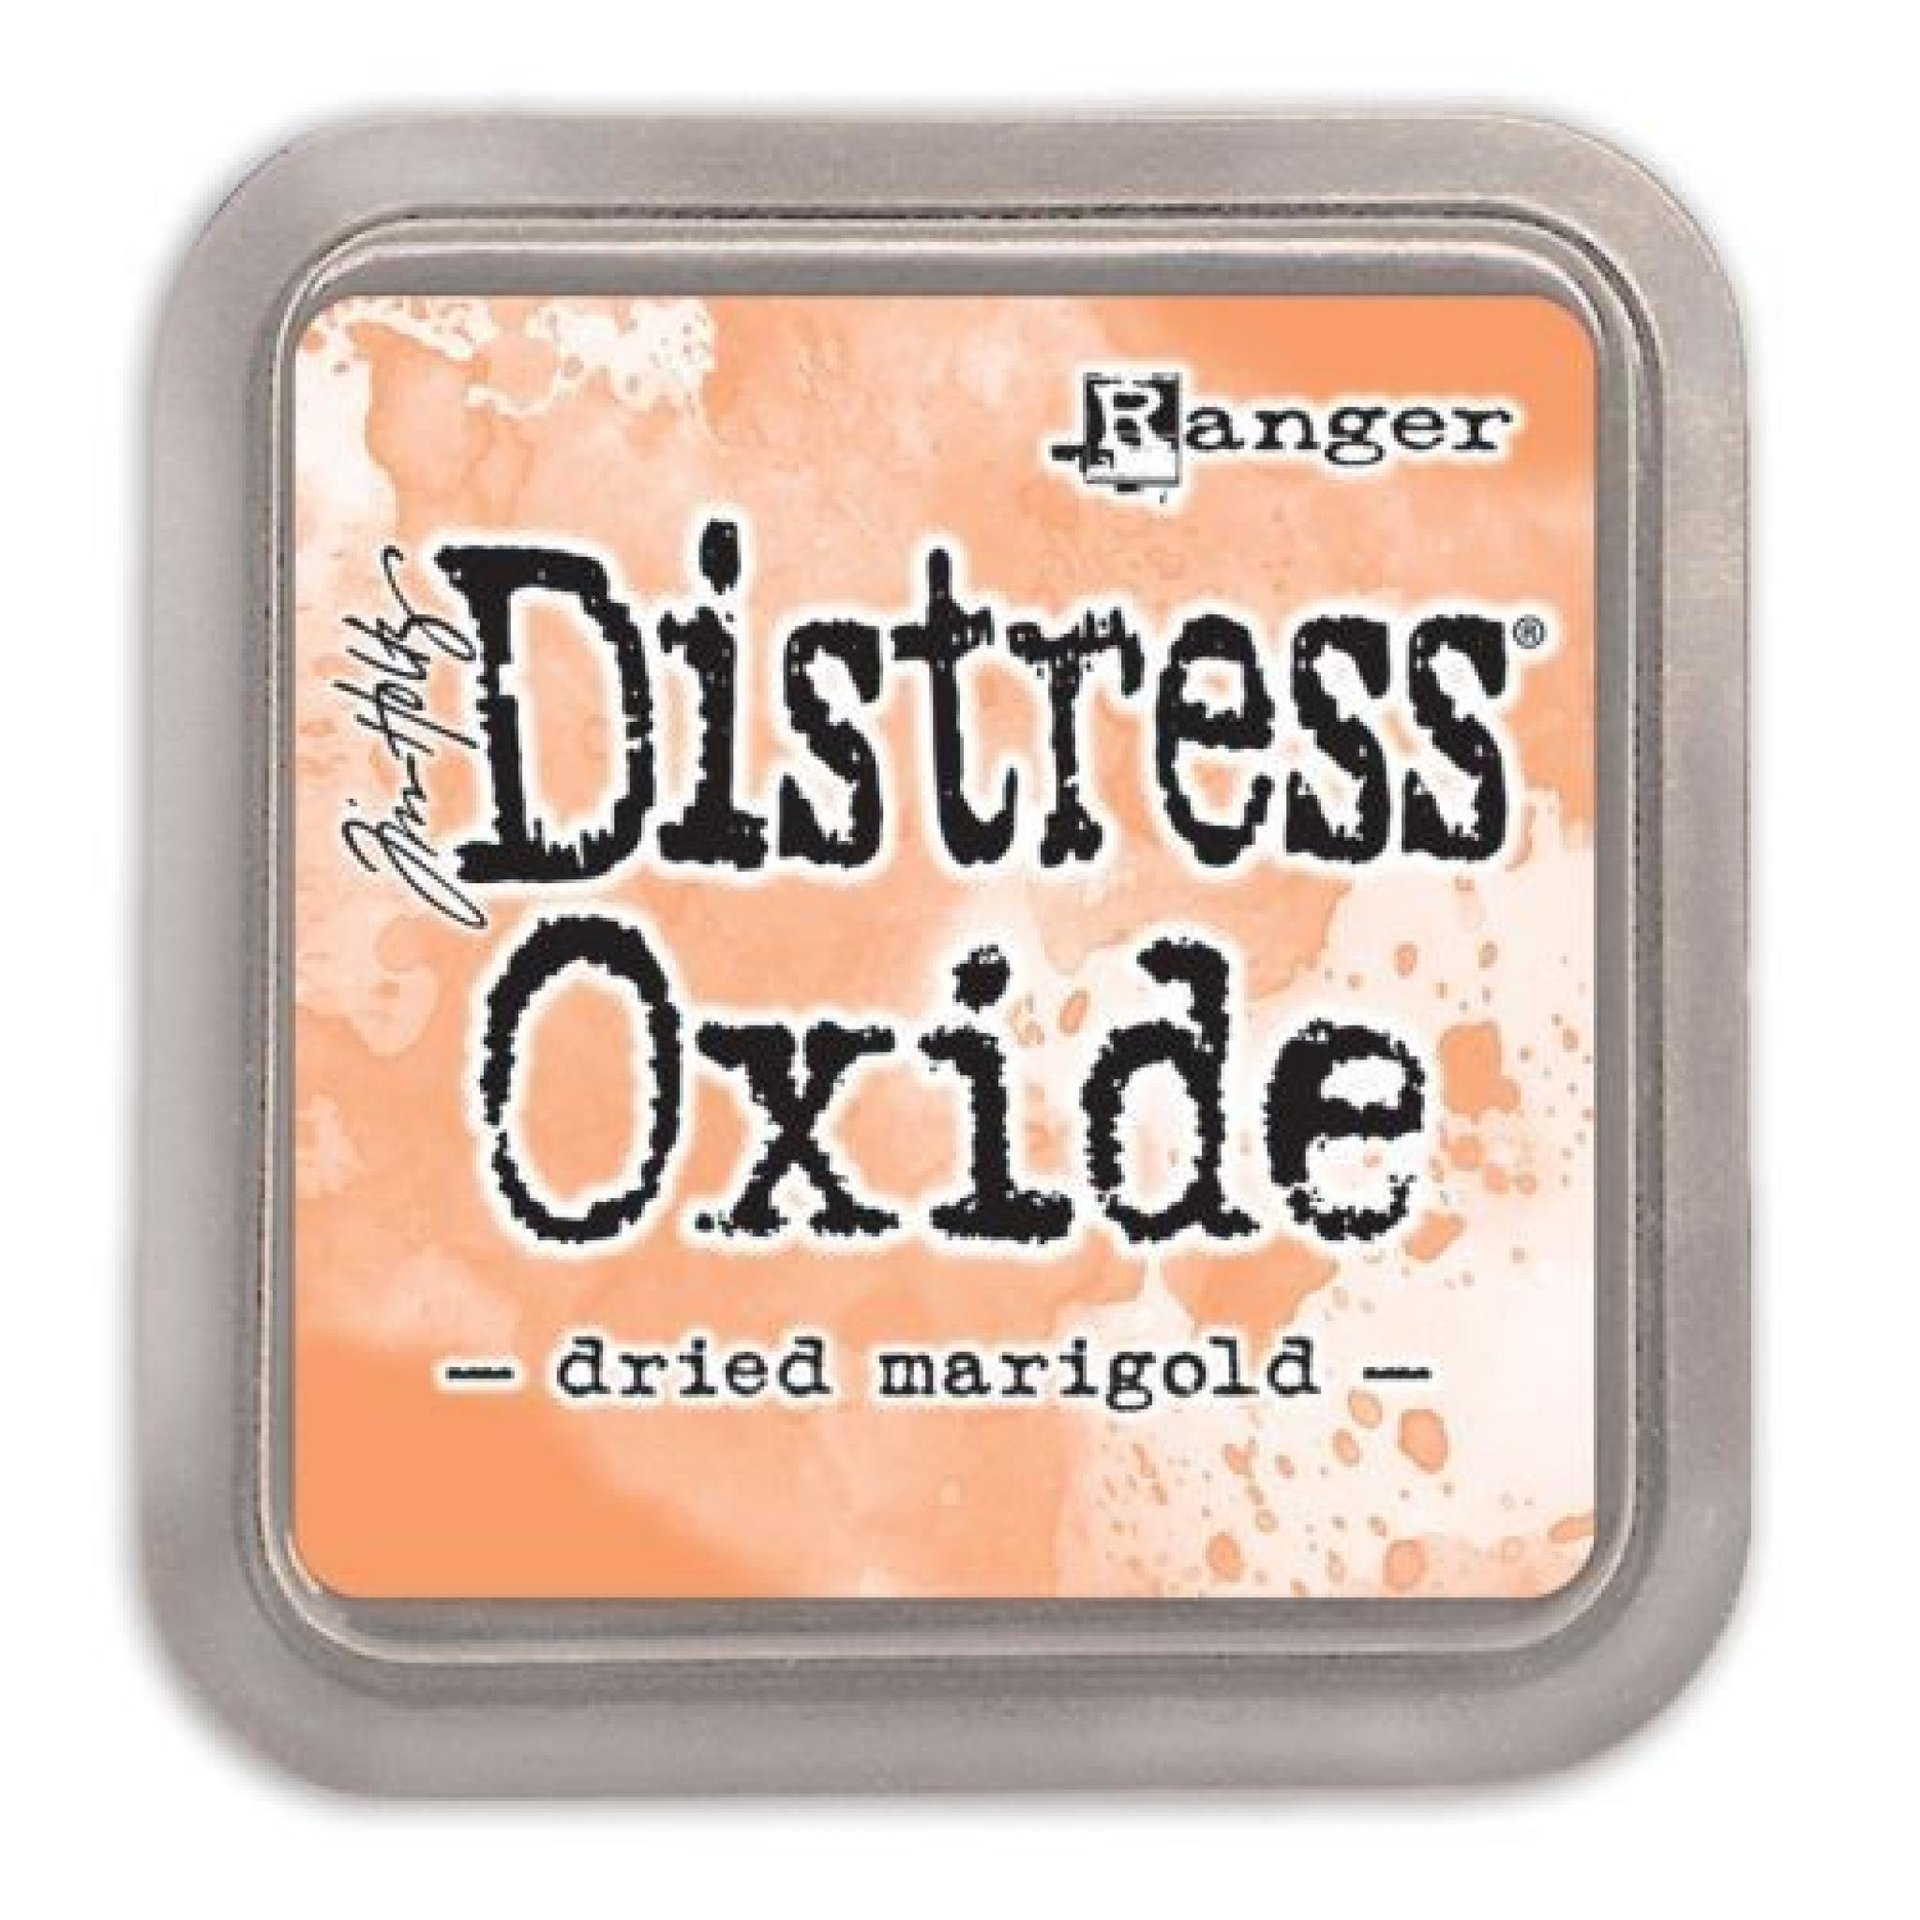 Distress Oxide-Dried marigold